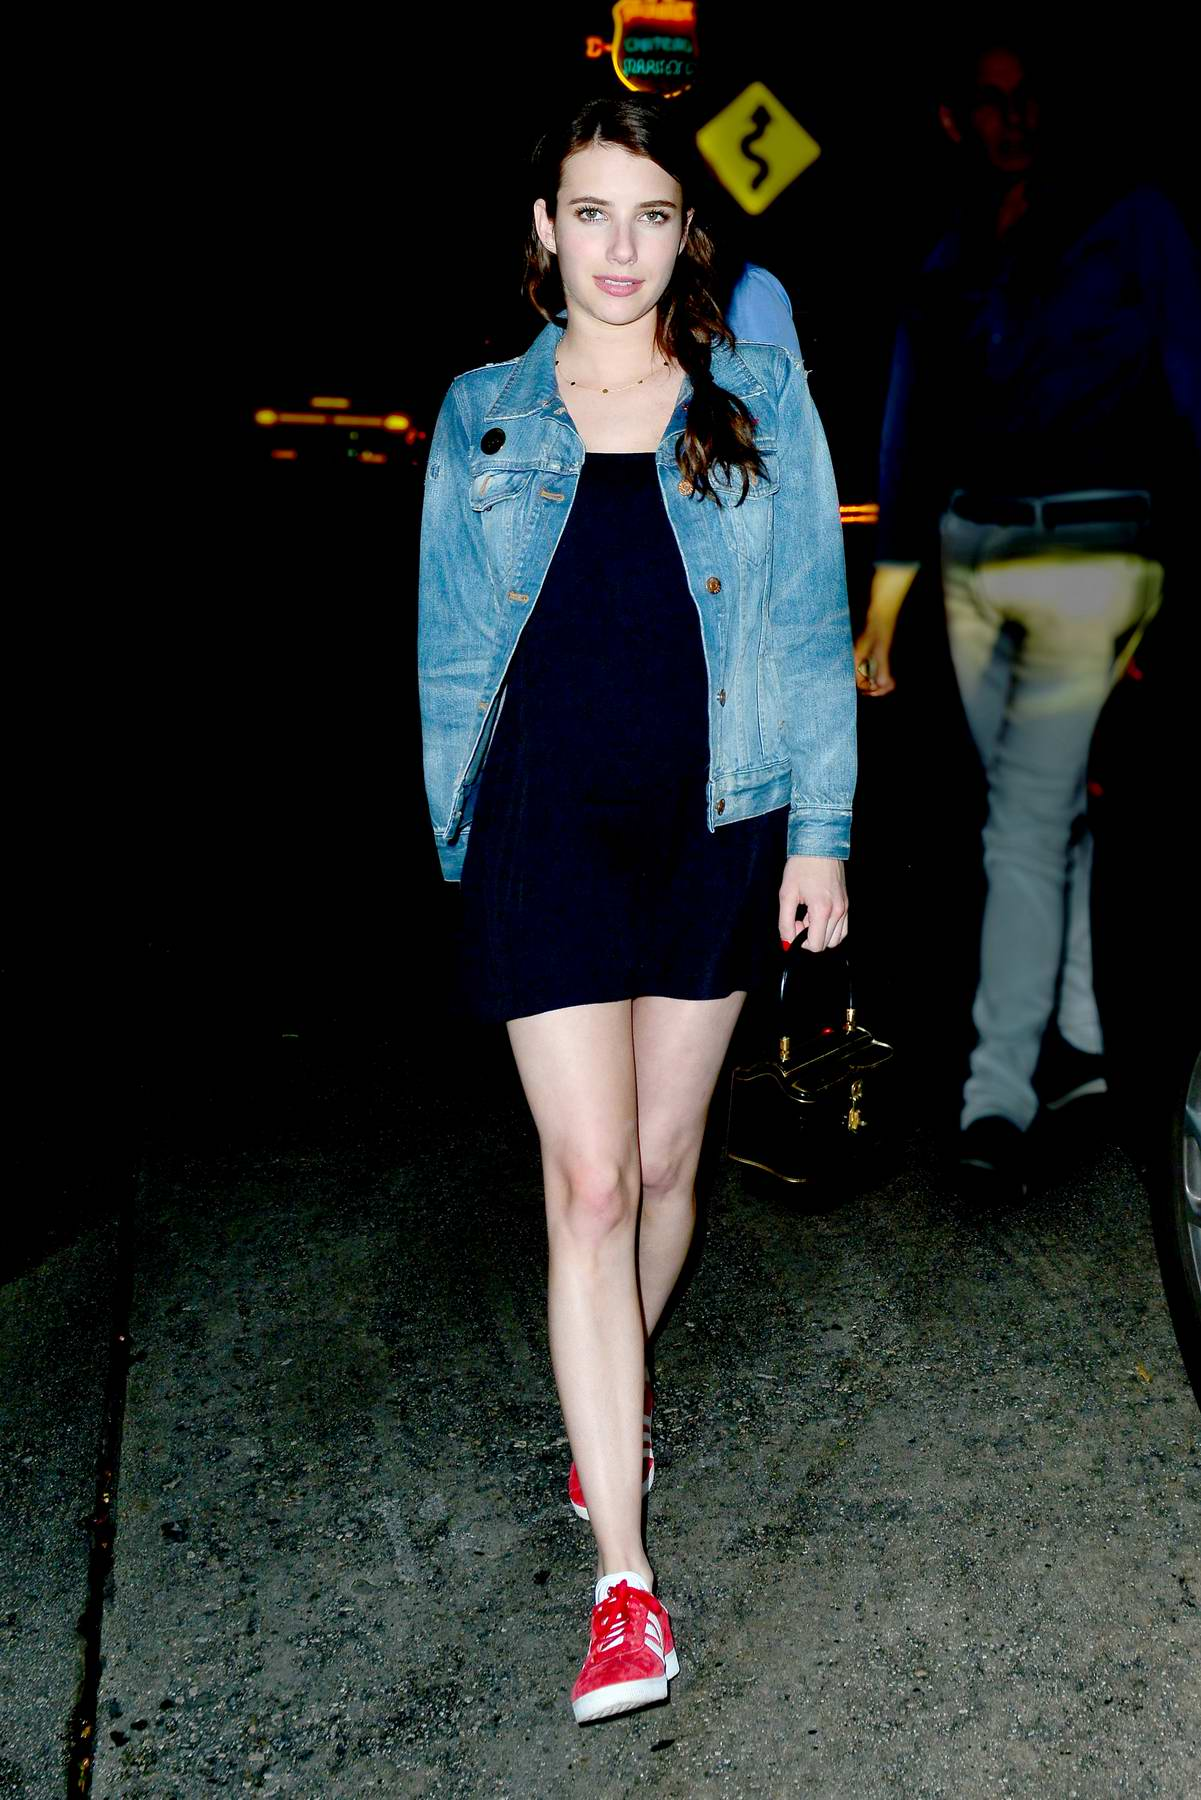 Emma Roberts leaving the Chateau Marmont Hotel after a business meeting in West Hollywood, California